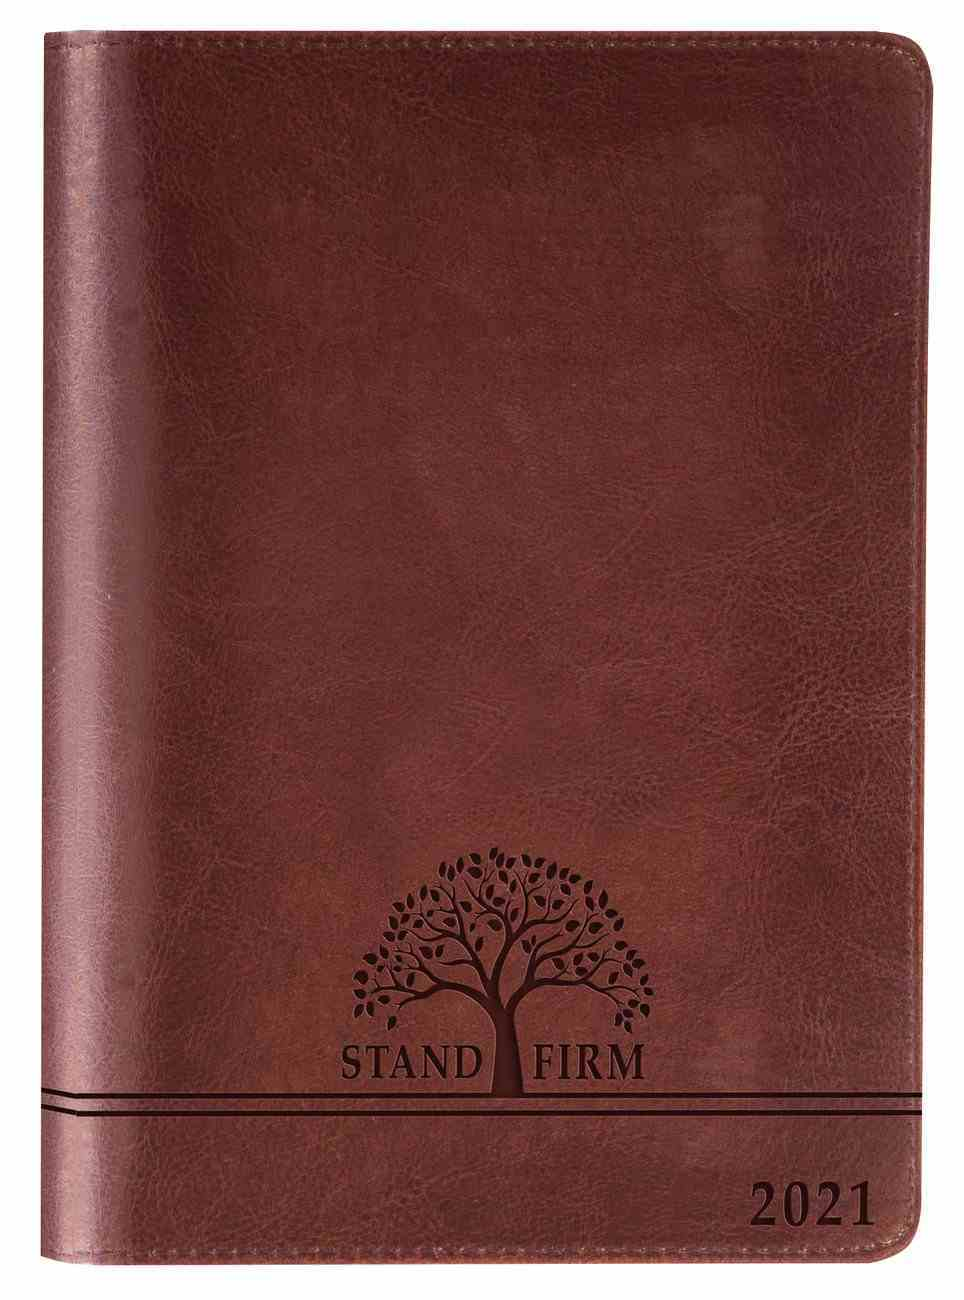 2021 12-Month Executive Diary/Planner: Stand Firm (Zippered) Imitation Leather